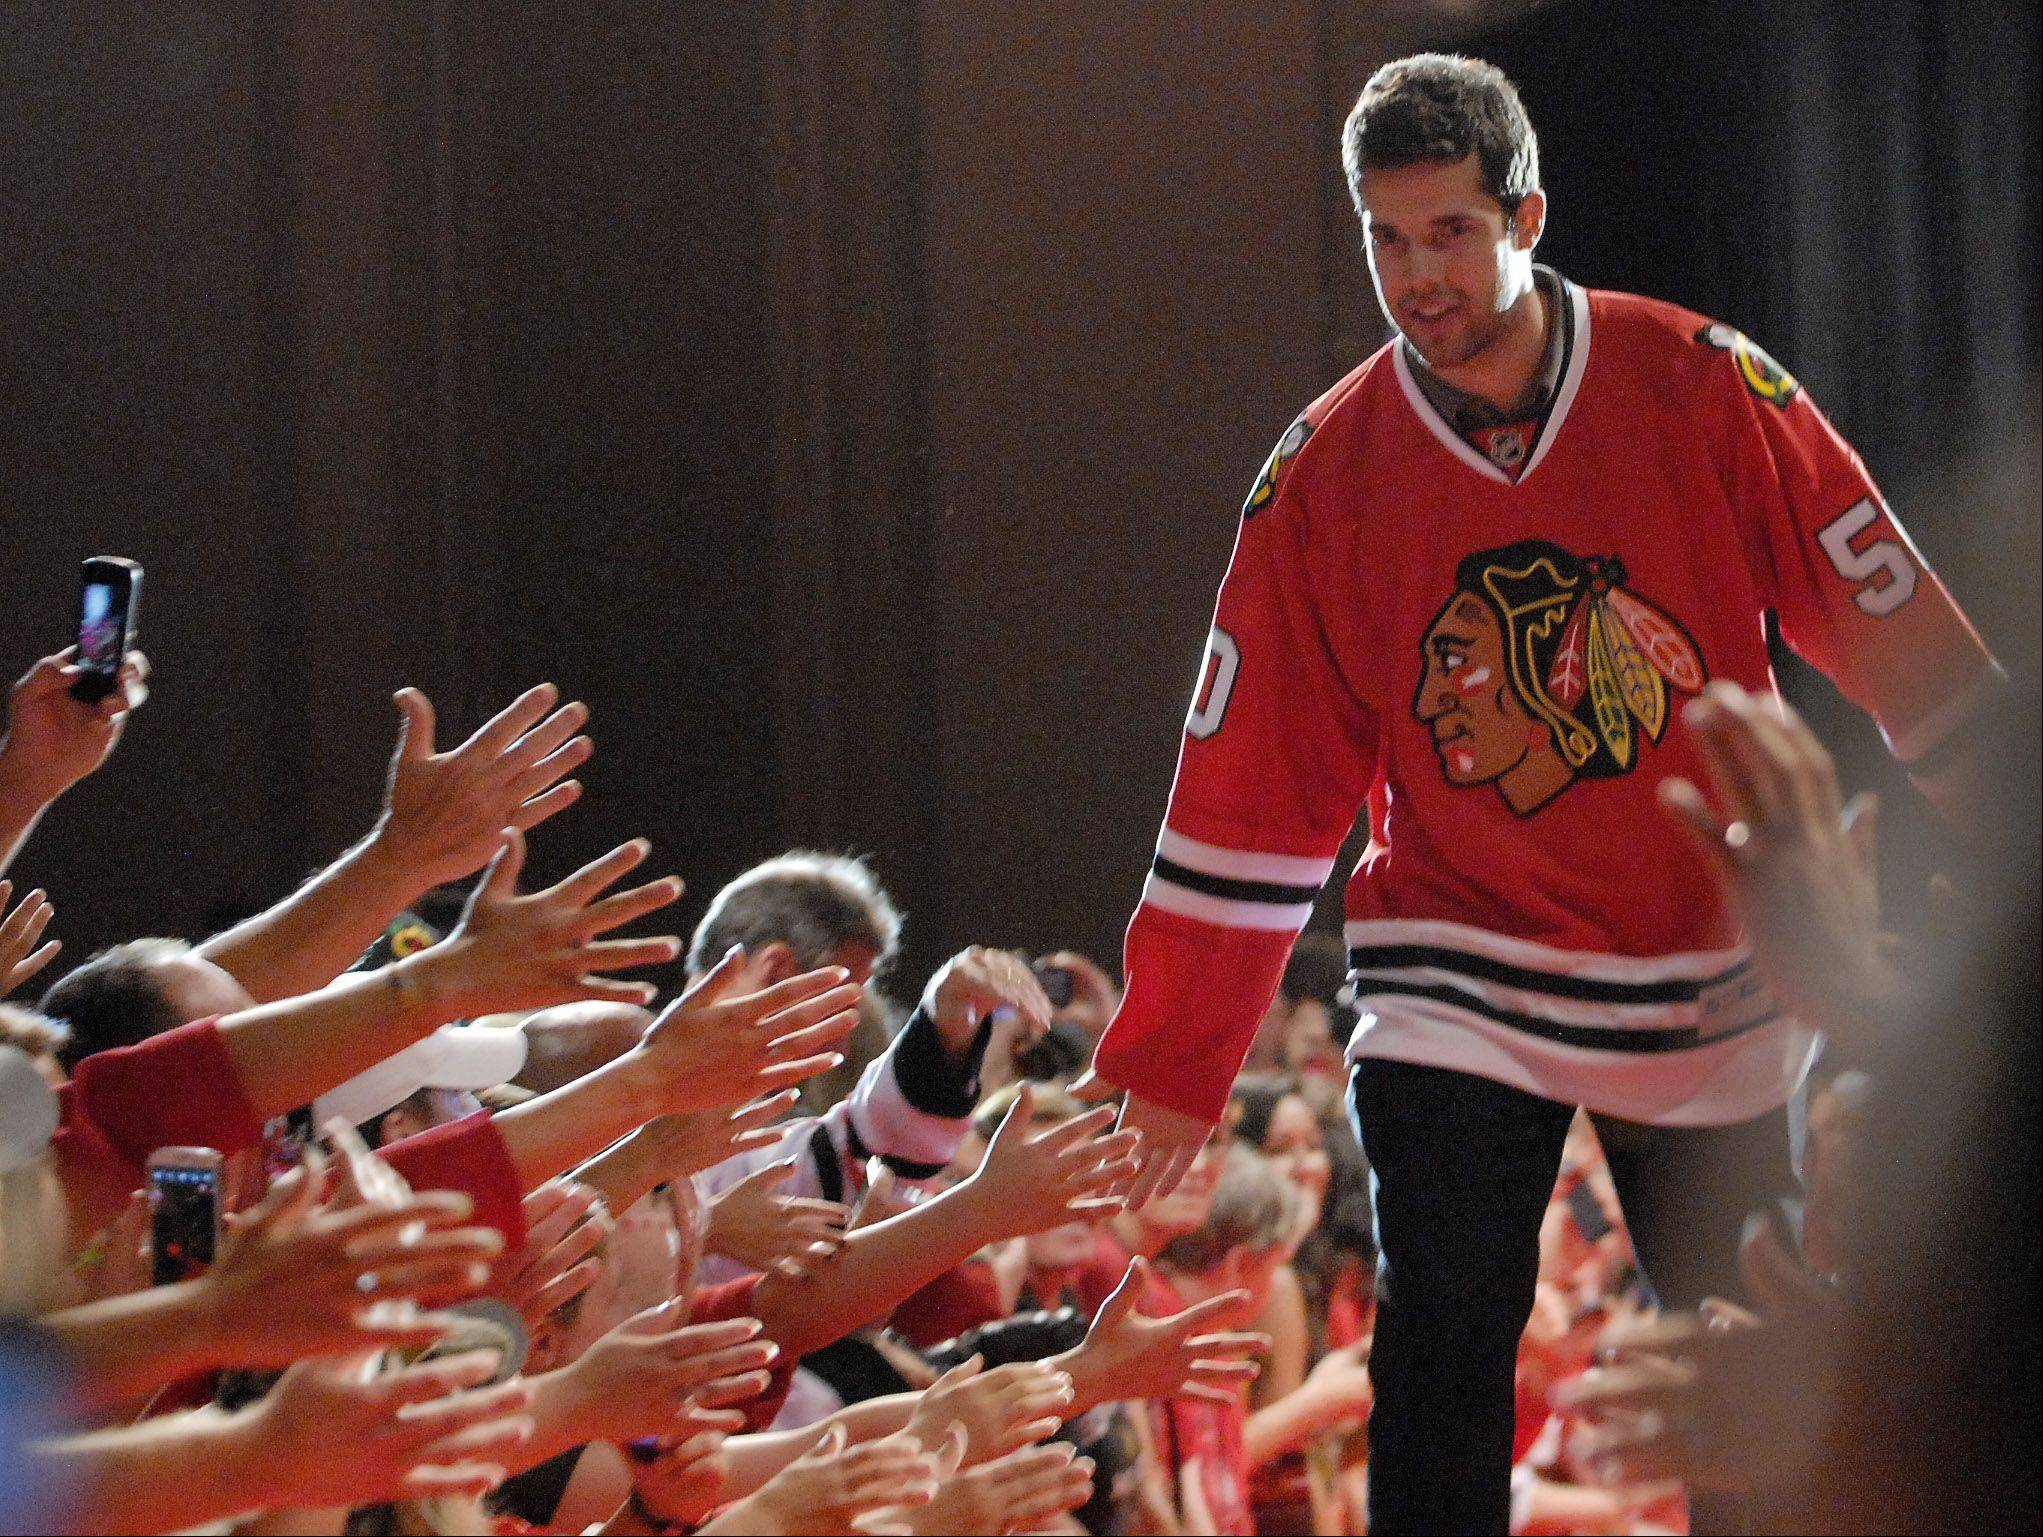 Corey Crawford is introduced.